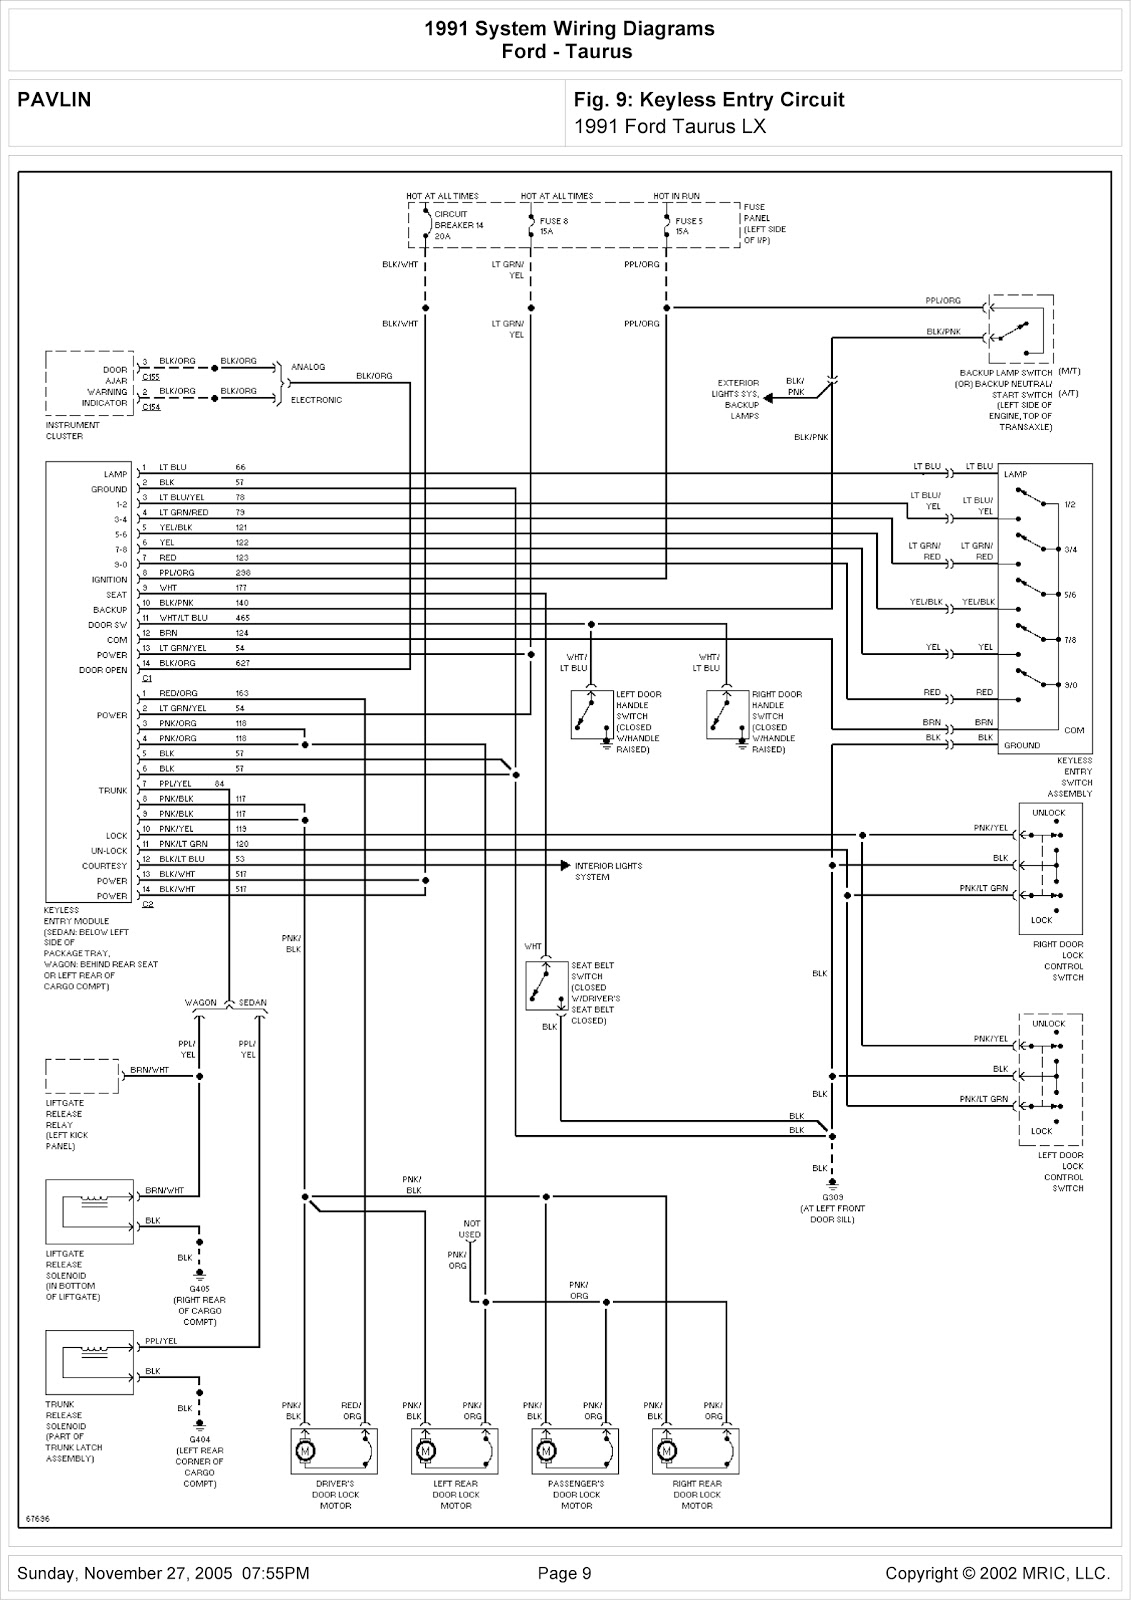 2011 ford fiesta wiring diagram pdf ford fiesta wiring diagram 1991 1991 ford taurus lx system wiring diagram for keyless ...